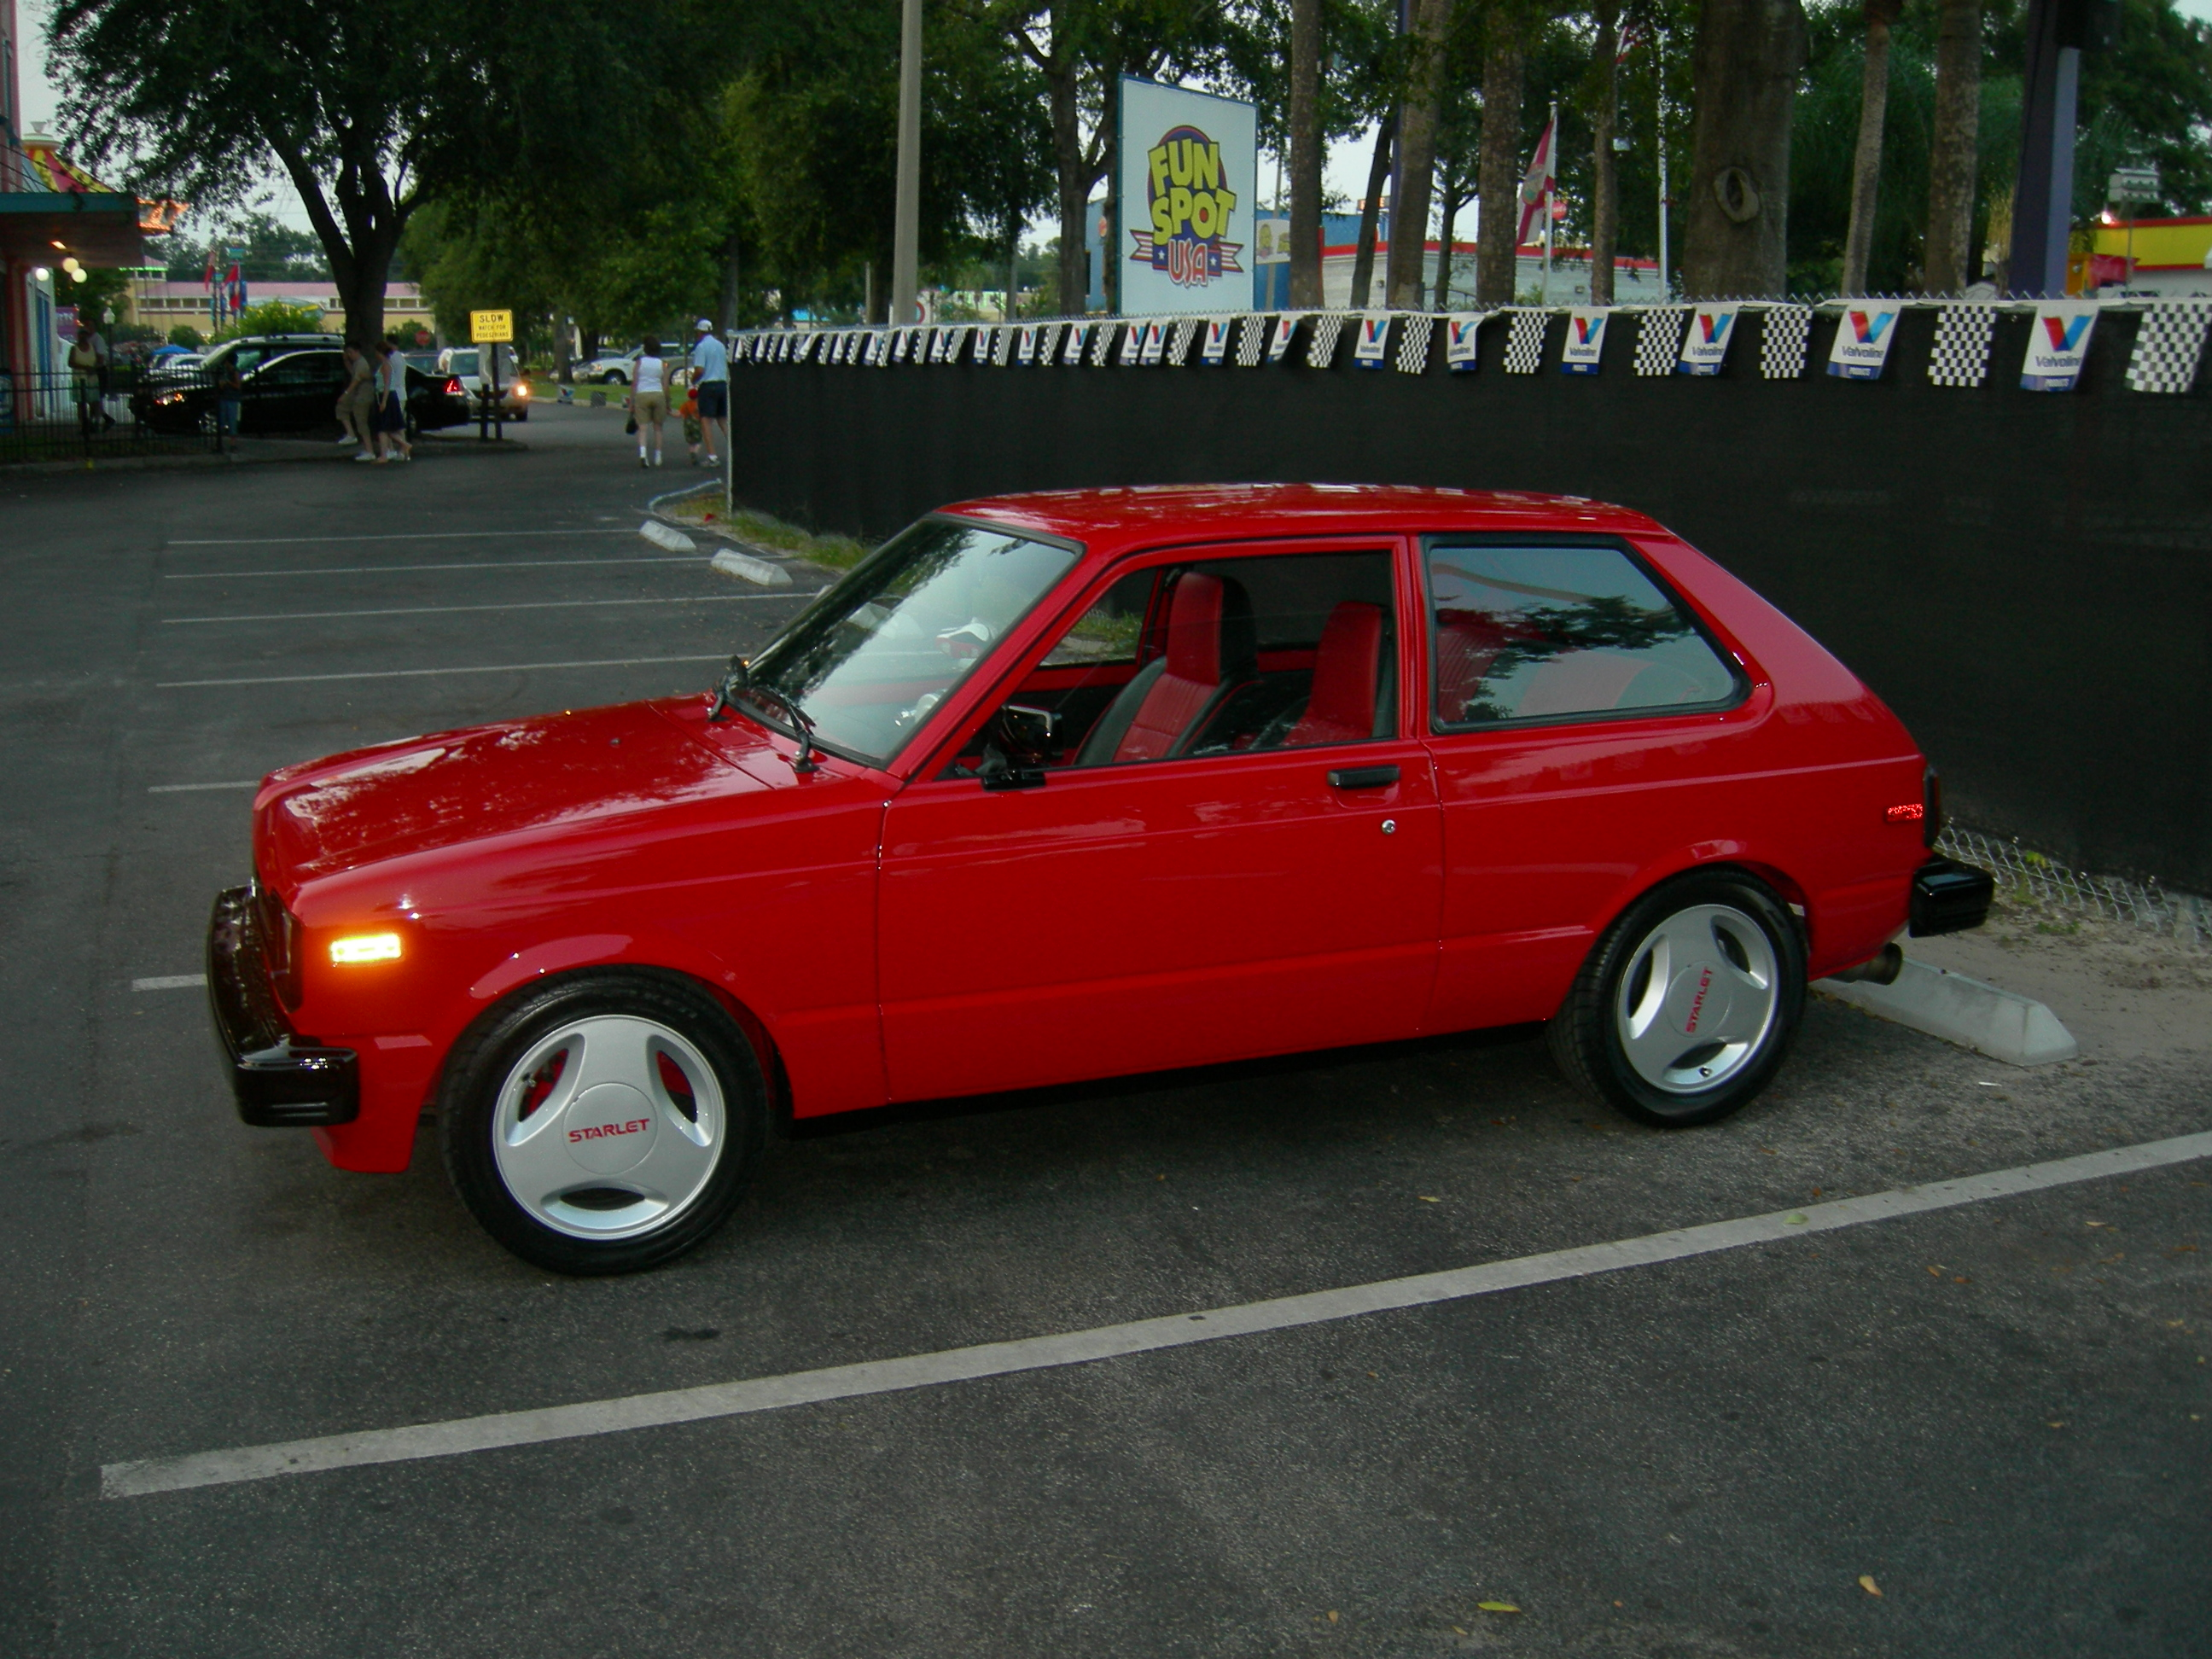 Toyota Starlet | Flickr - Photo Sharing!